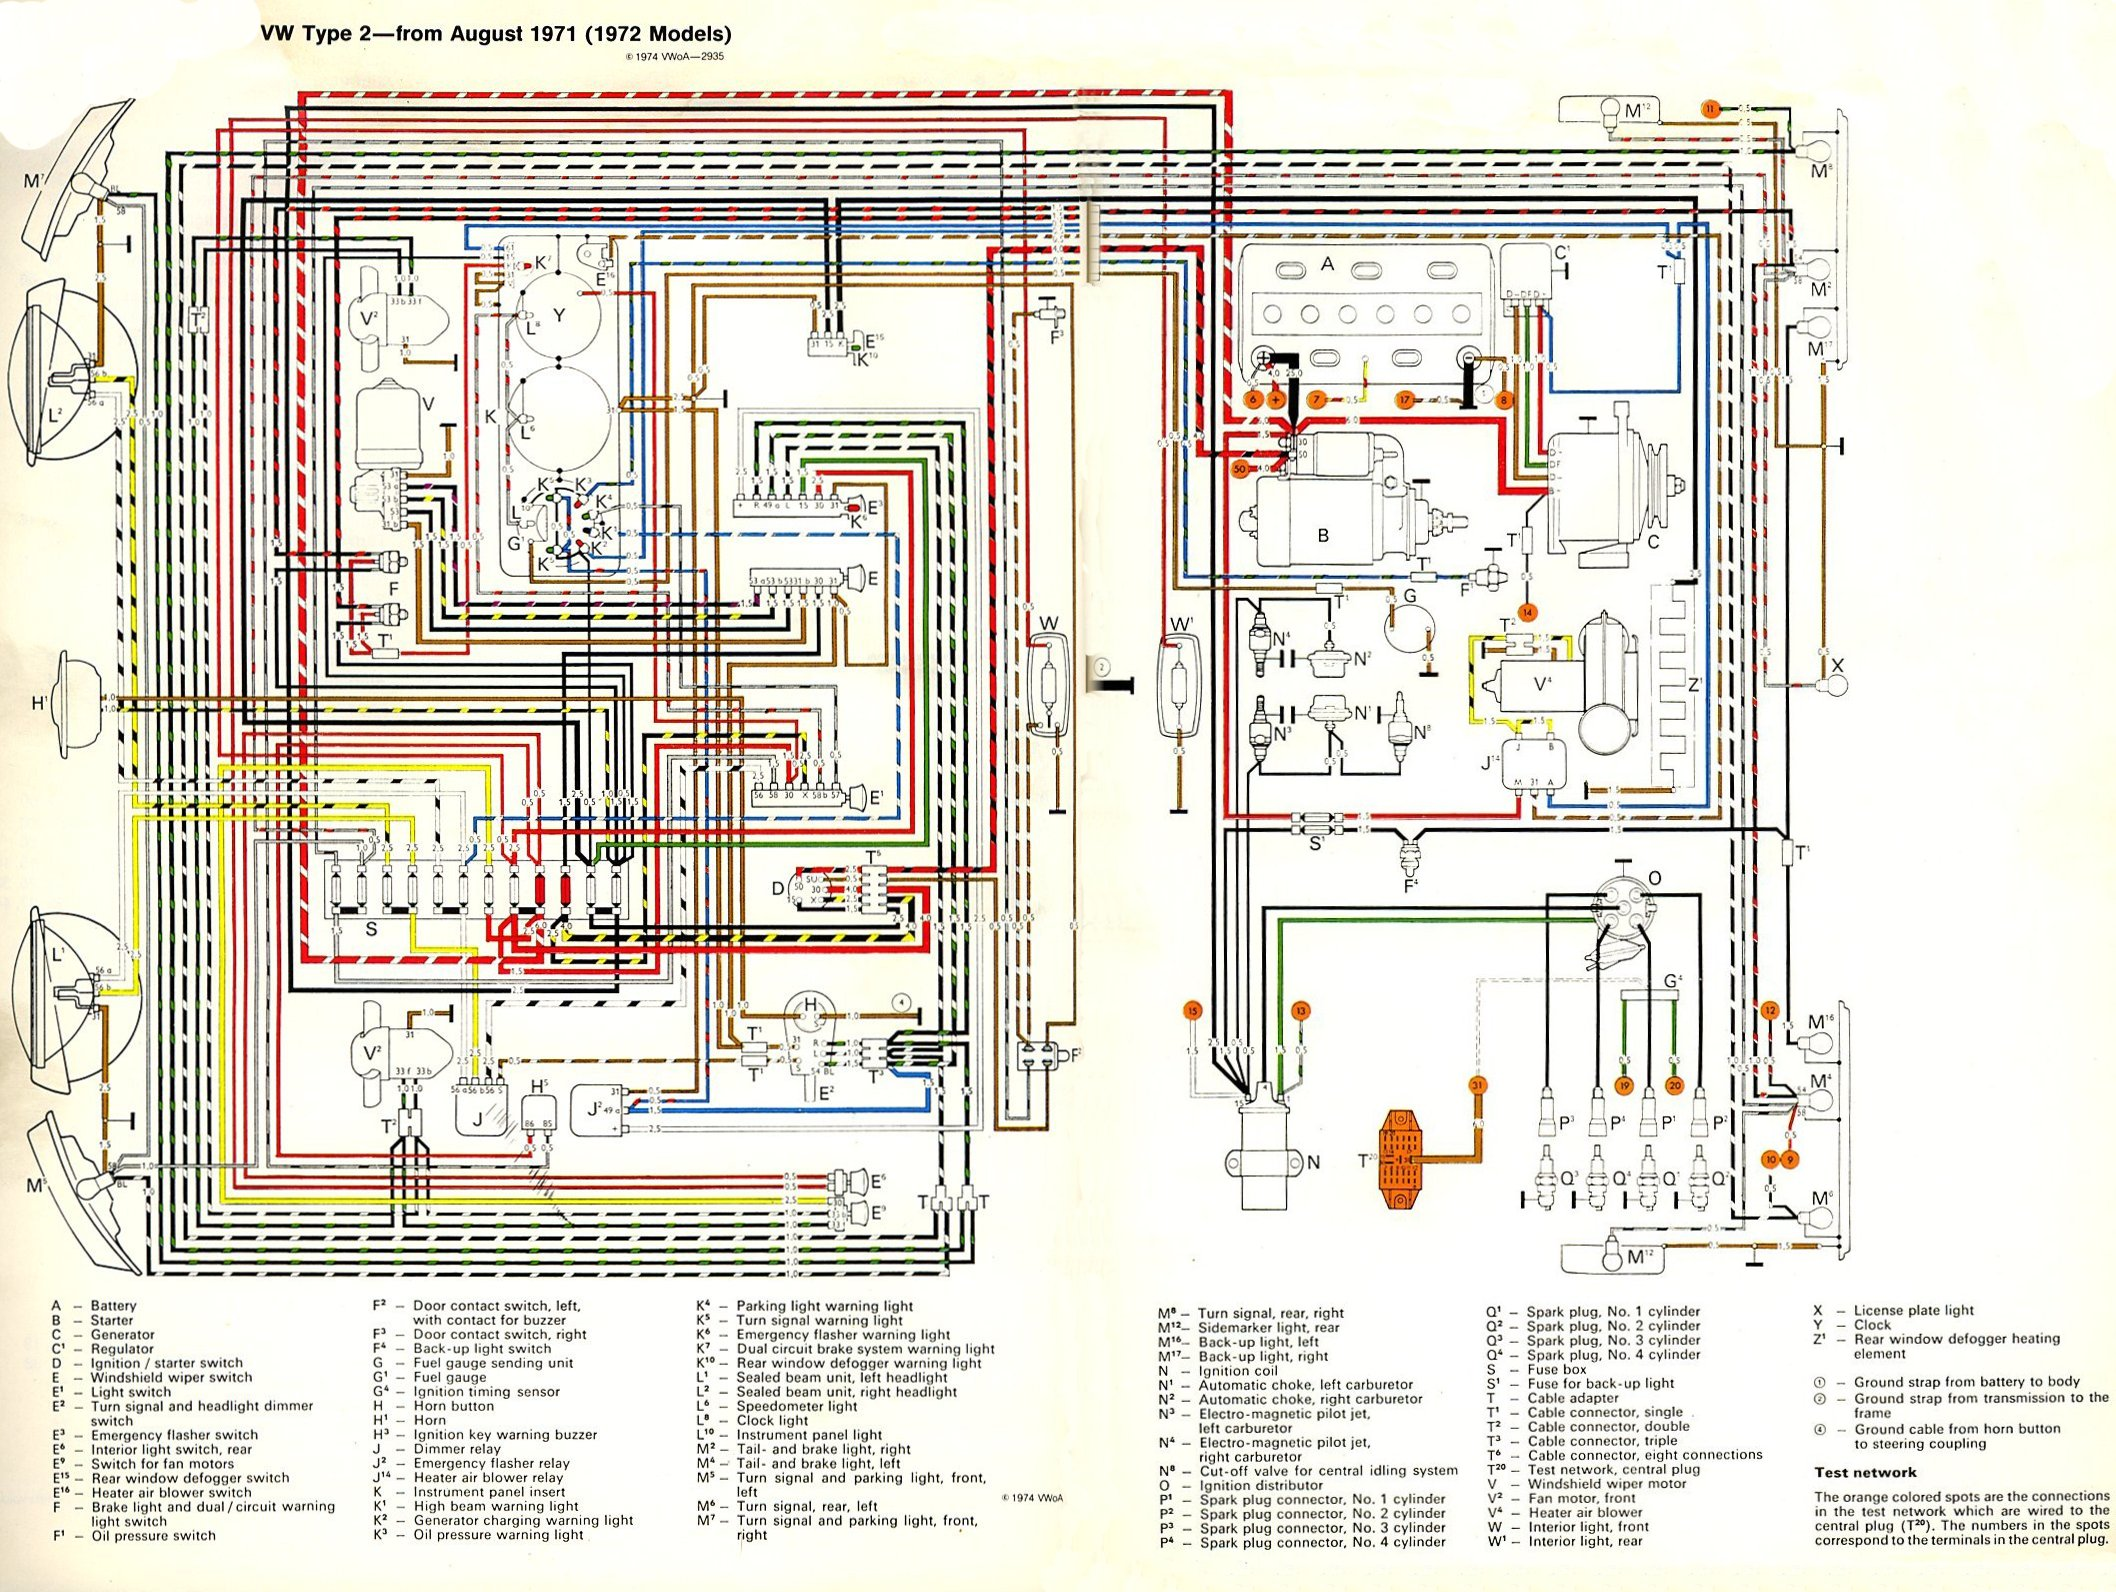 bus_1972_wiring bus_1972_wiring jpg (2116�1592) wire pinterest kombi camper vw t4 fuse box wiring diagram at eliteediting.co